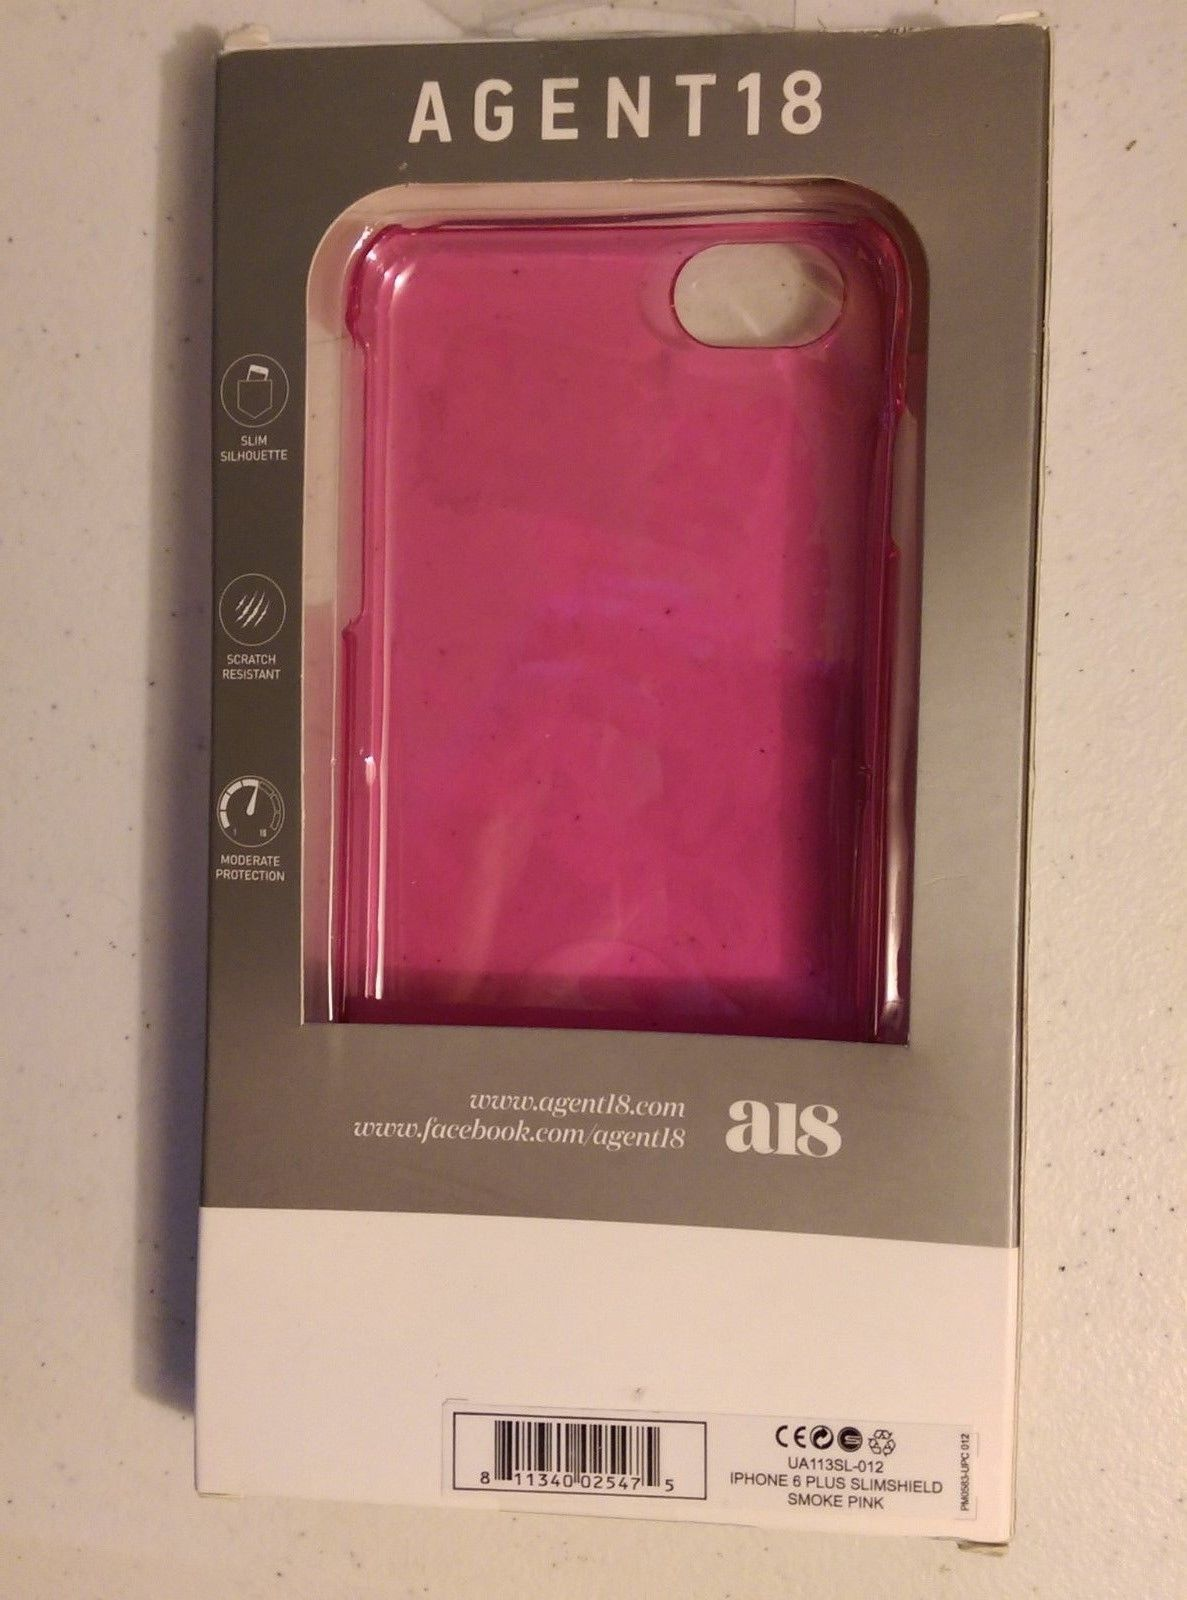 SMOKE PINK Agent 18 SlimShield iPhone 6 Plus Silhouette Case